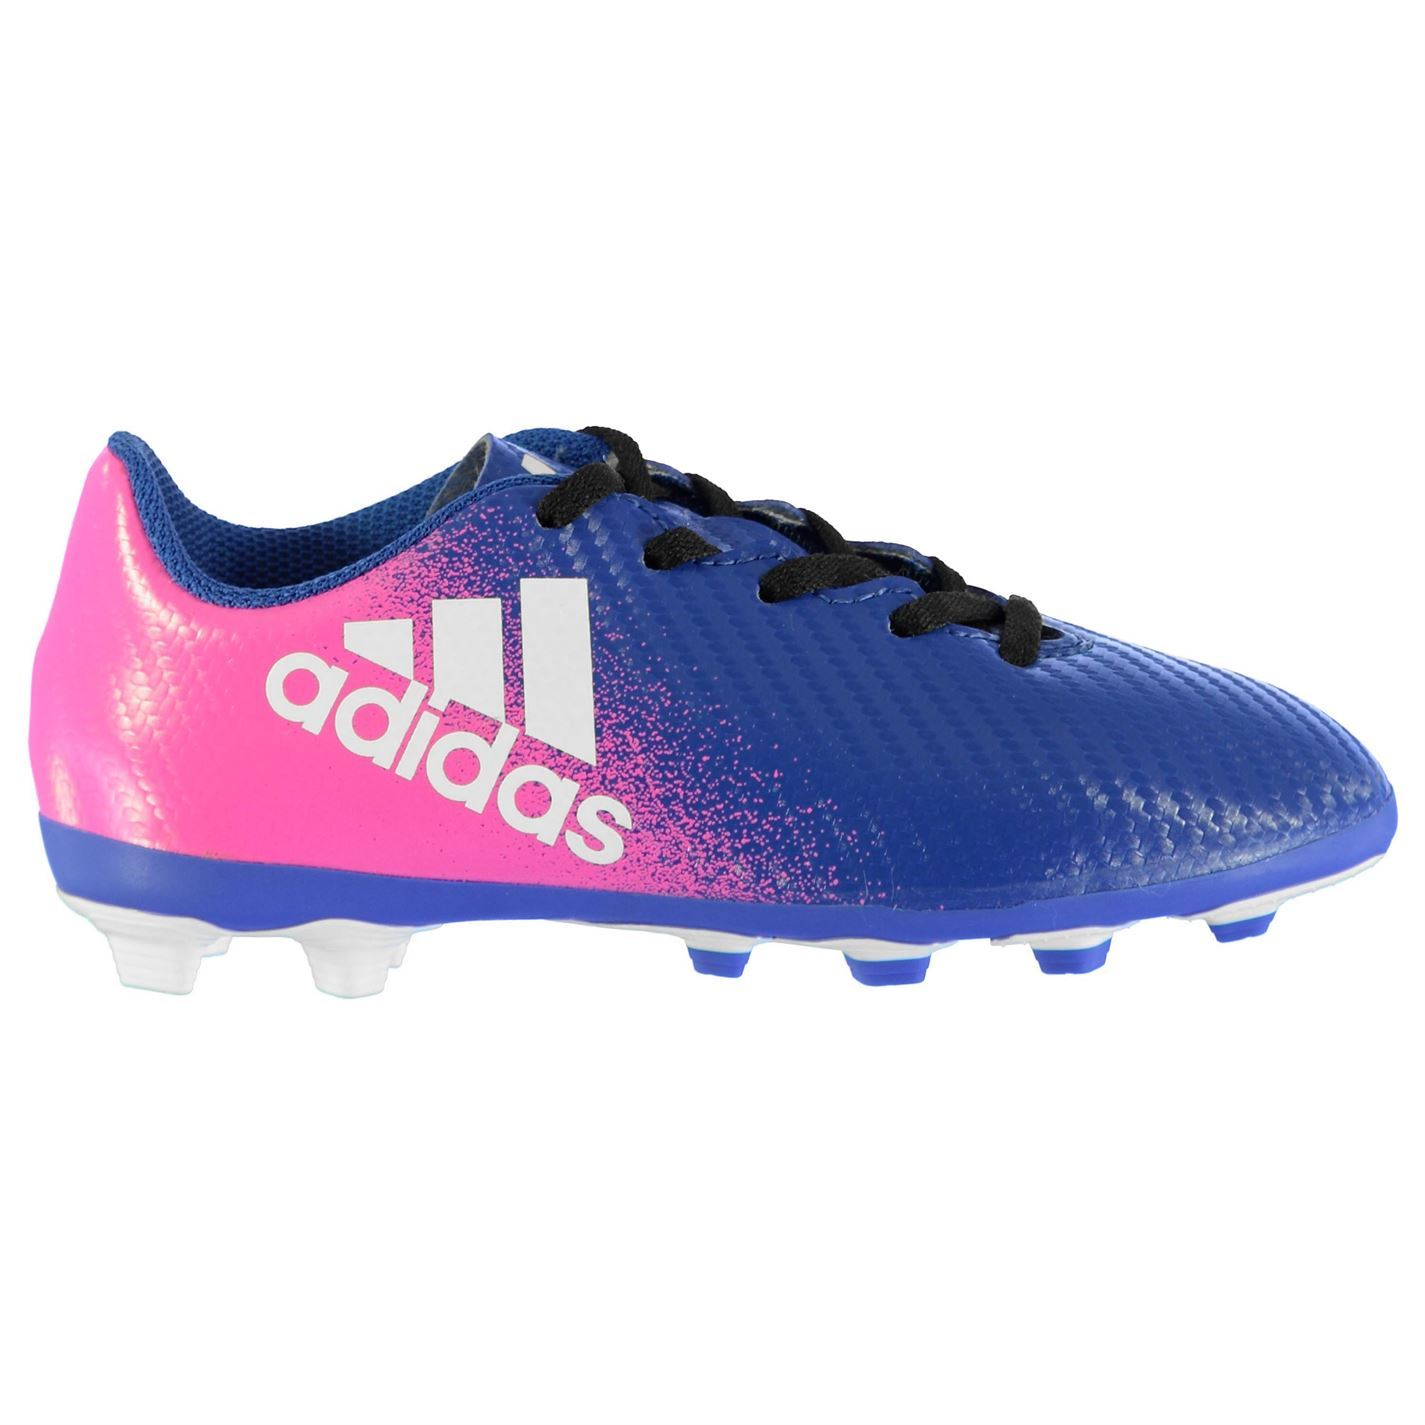 5c99c913159d ... adidas X 16.4 FG Firm Ground Football Boots Juniors Soccer Shoes  Blue/White/Pink ...